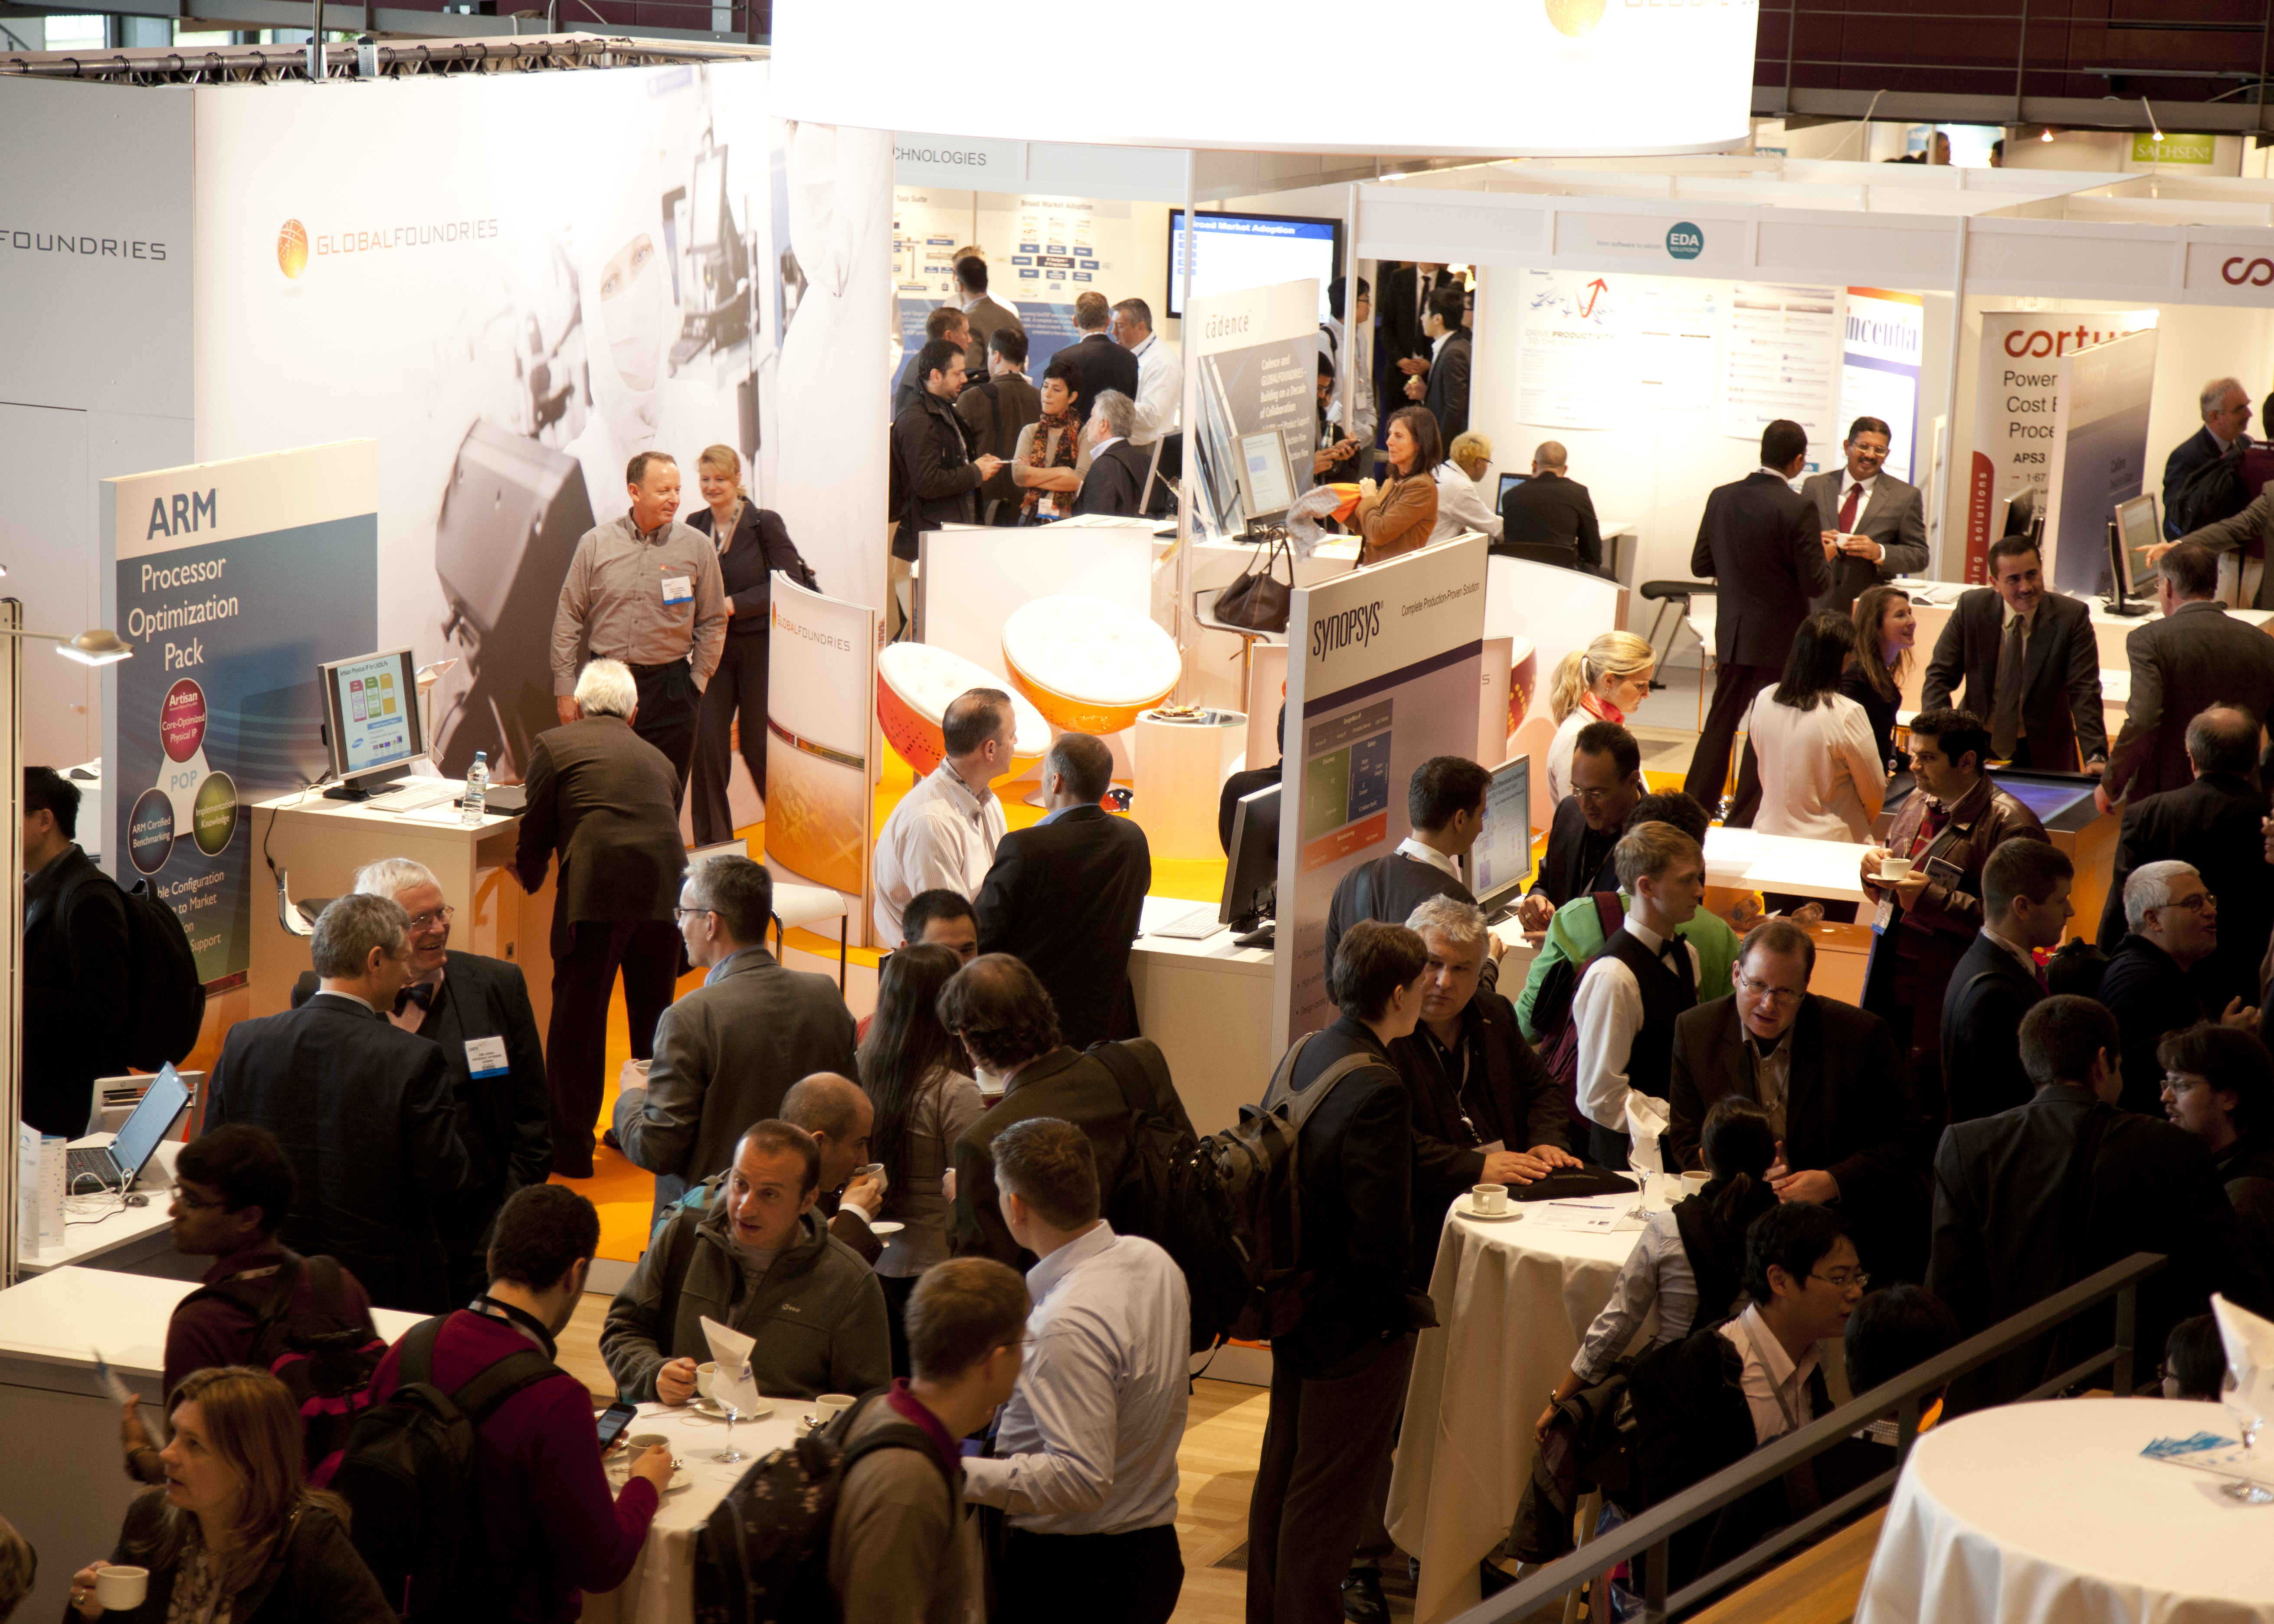 The exhibition at DATE 2012, Dresden, Germany